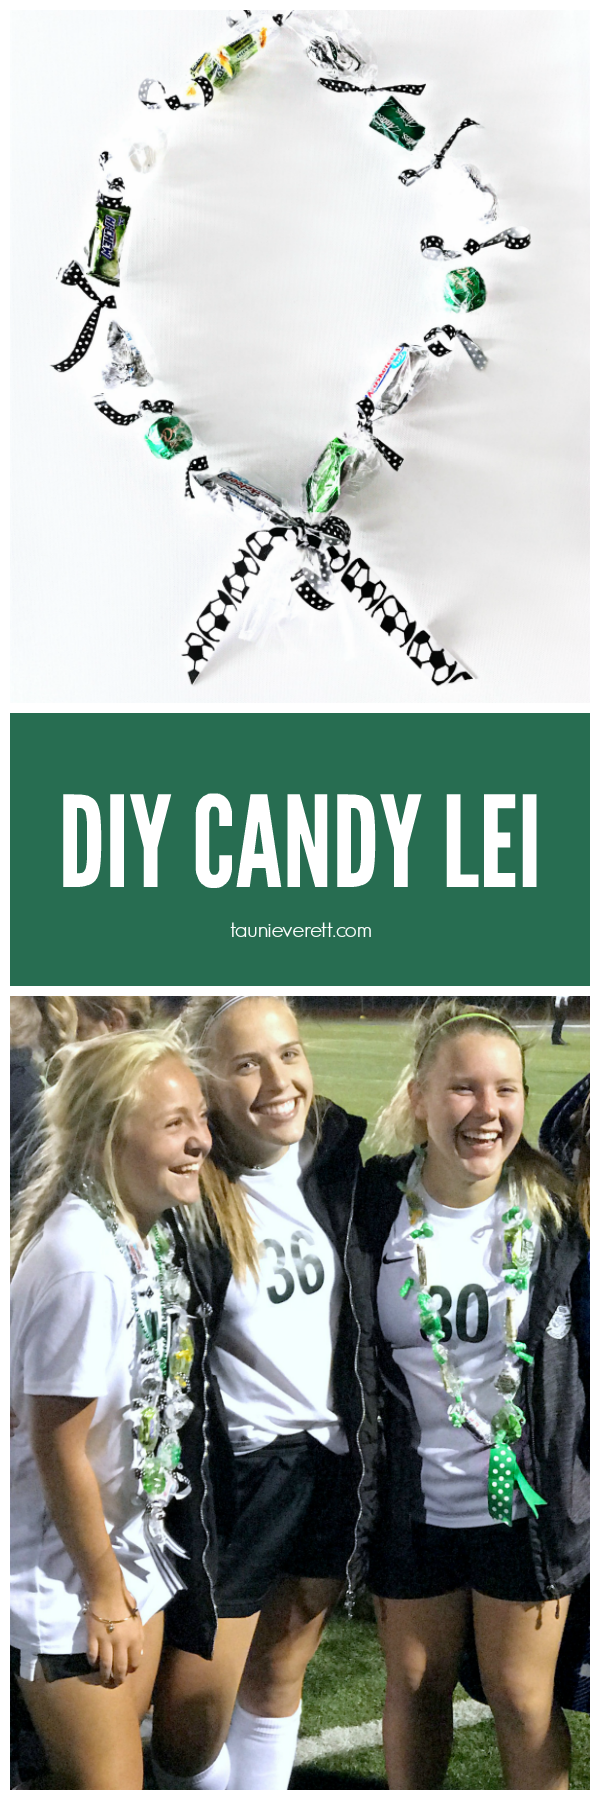 DIY Candy Graduation Lei perfect for graduating seniors or special end of year celebrations.